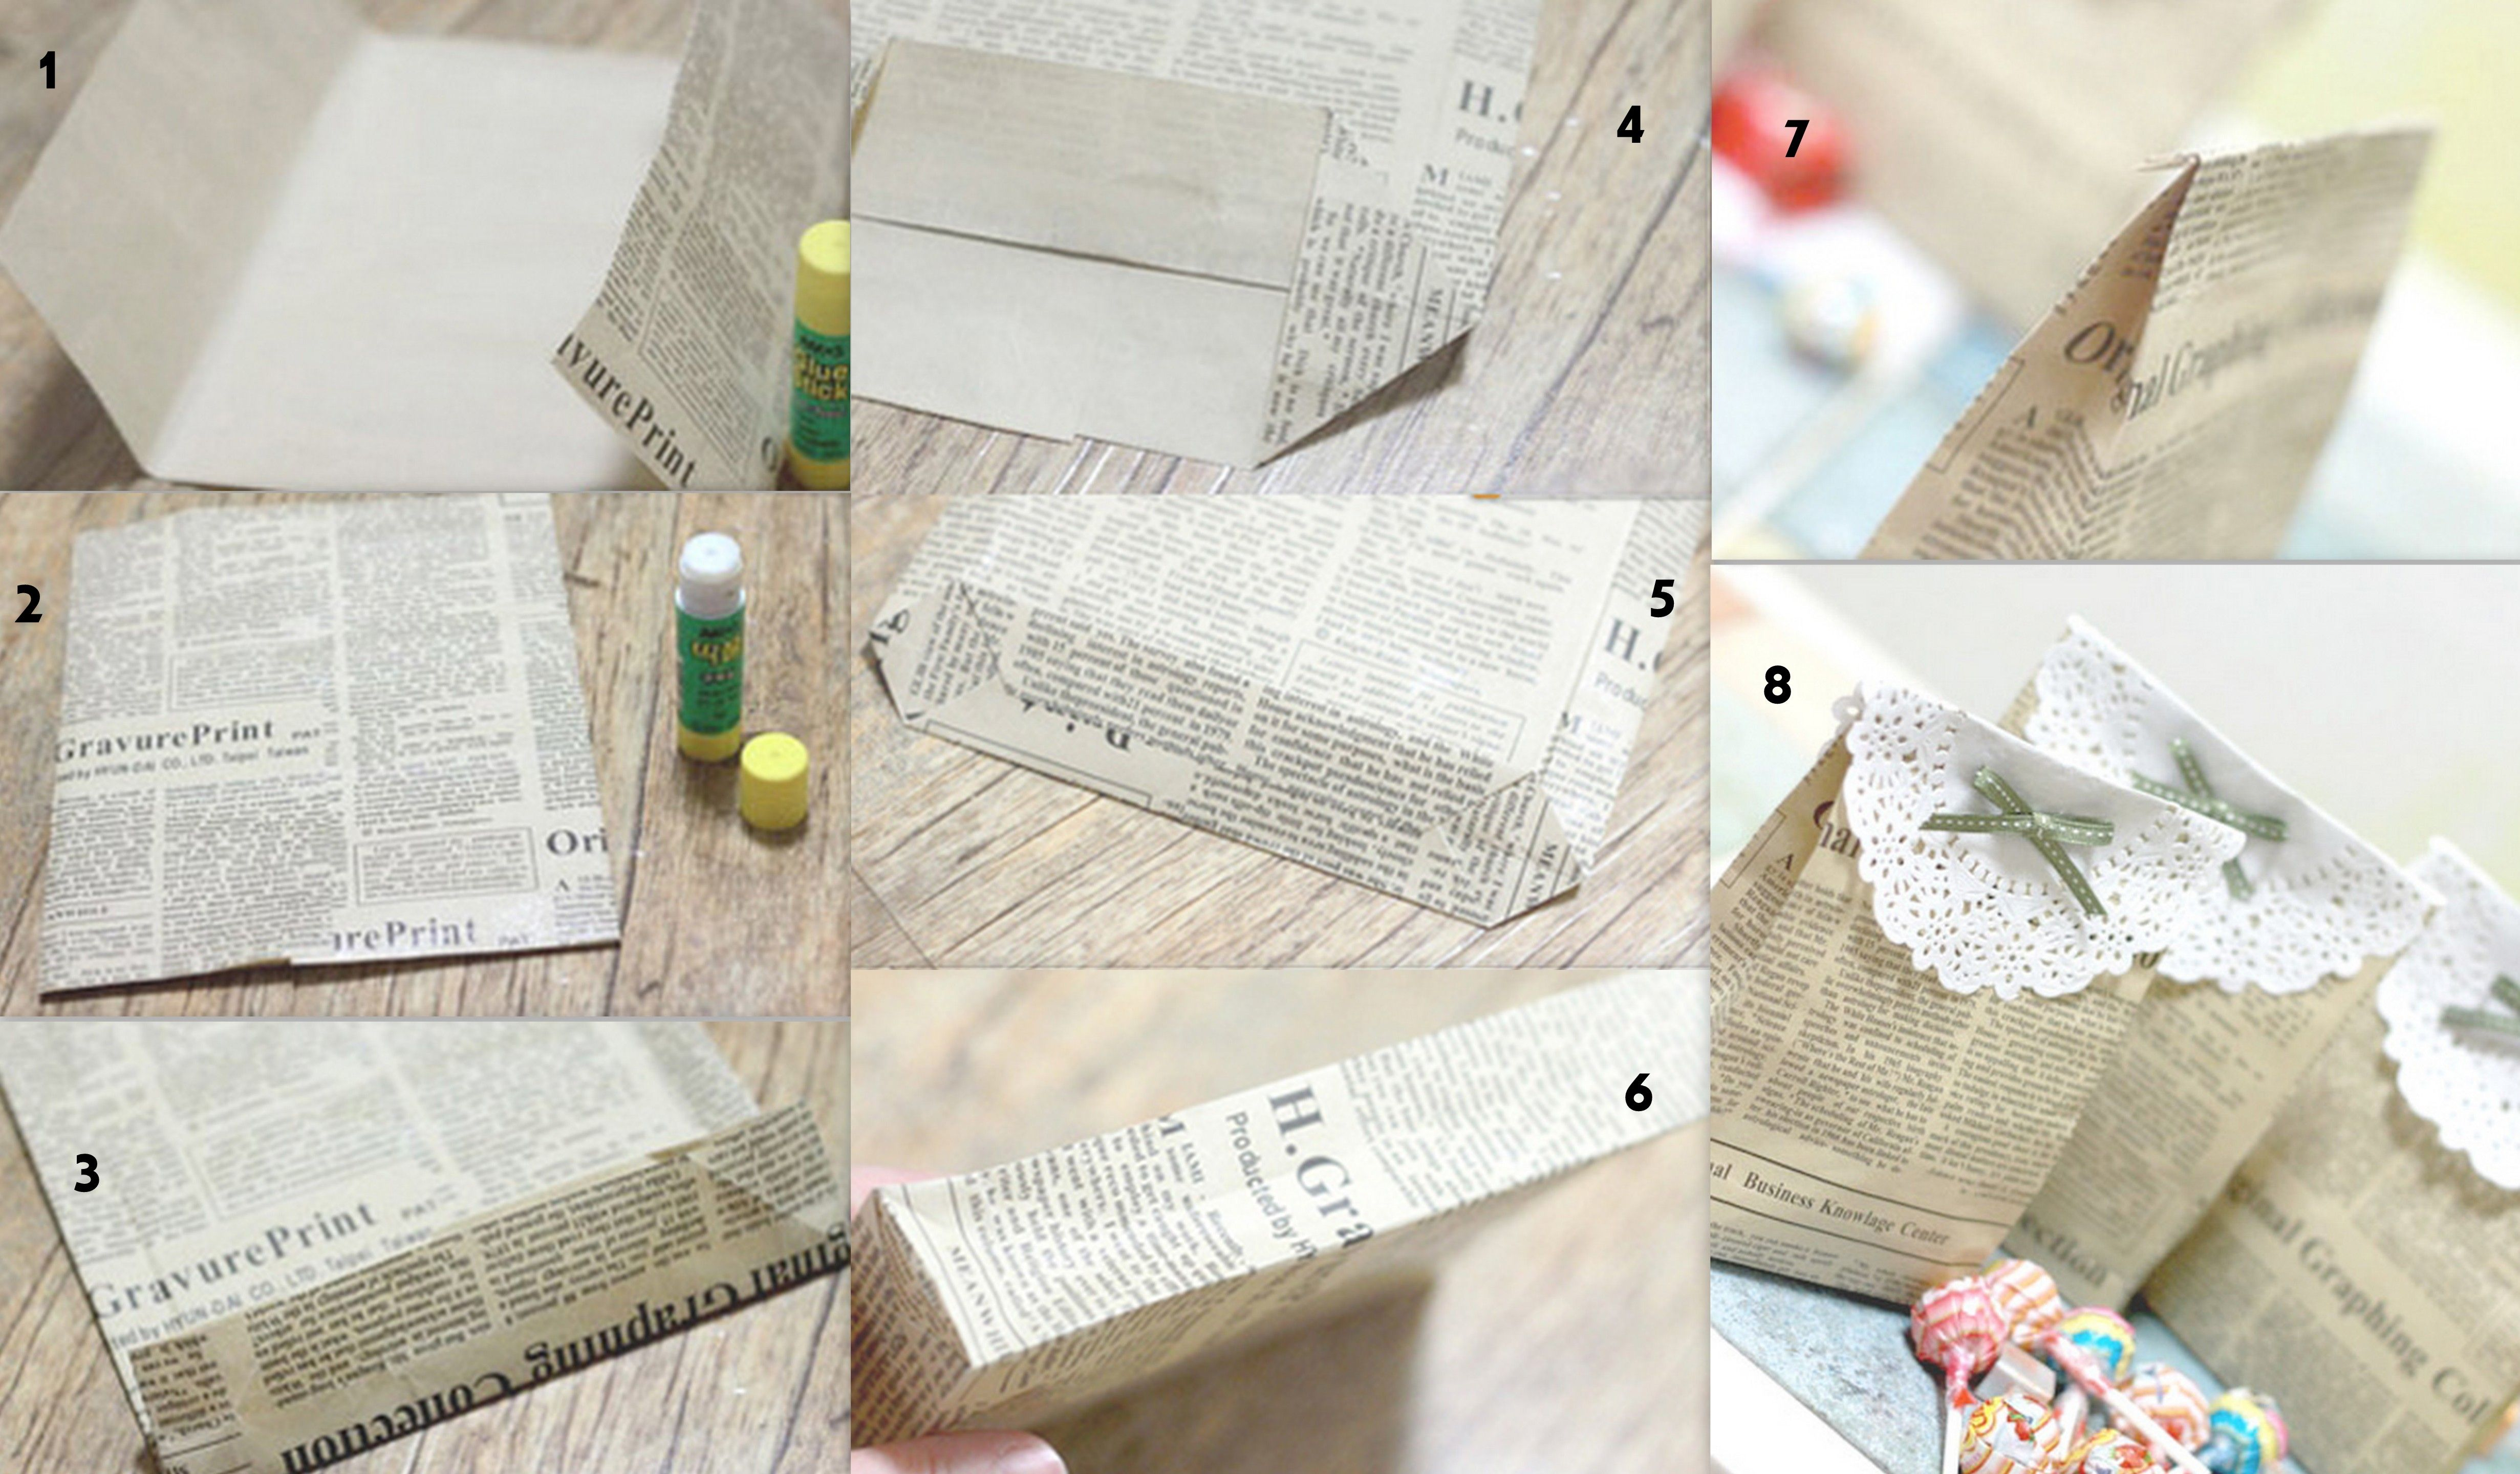 Best out of waste 7 diy ideas for newspaper recycling for Waste out of best easy